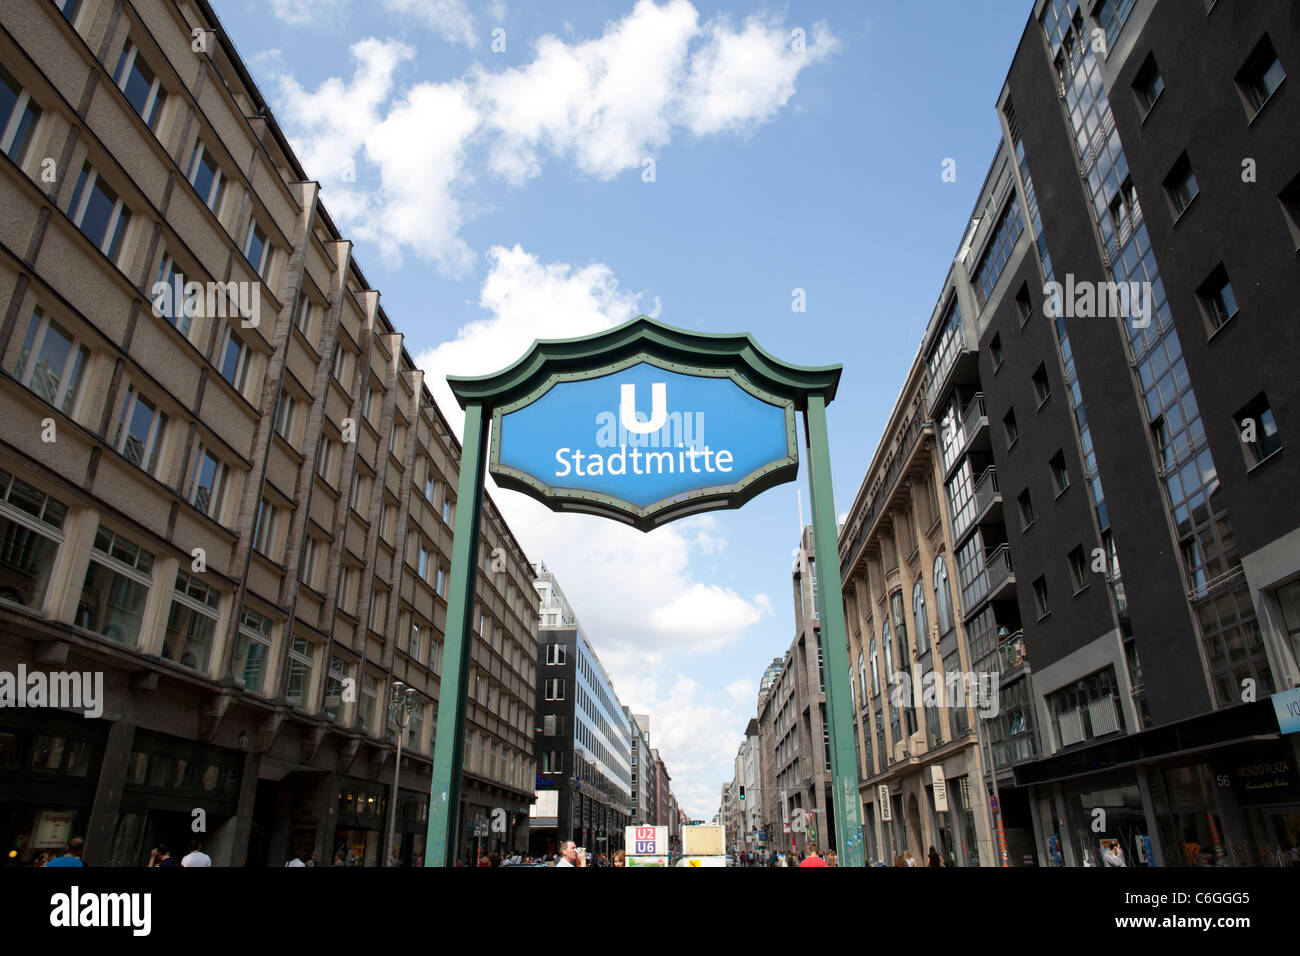 STADTMITTE UNDERGROUND STATION IN THE MITTE DISTRICT IN BERLIN, GERMANY - Stock Image